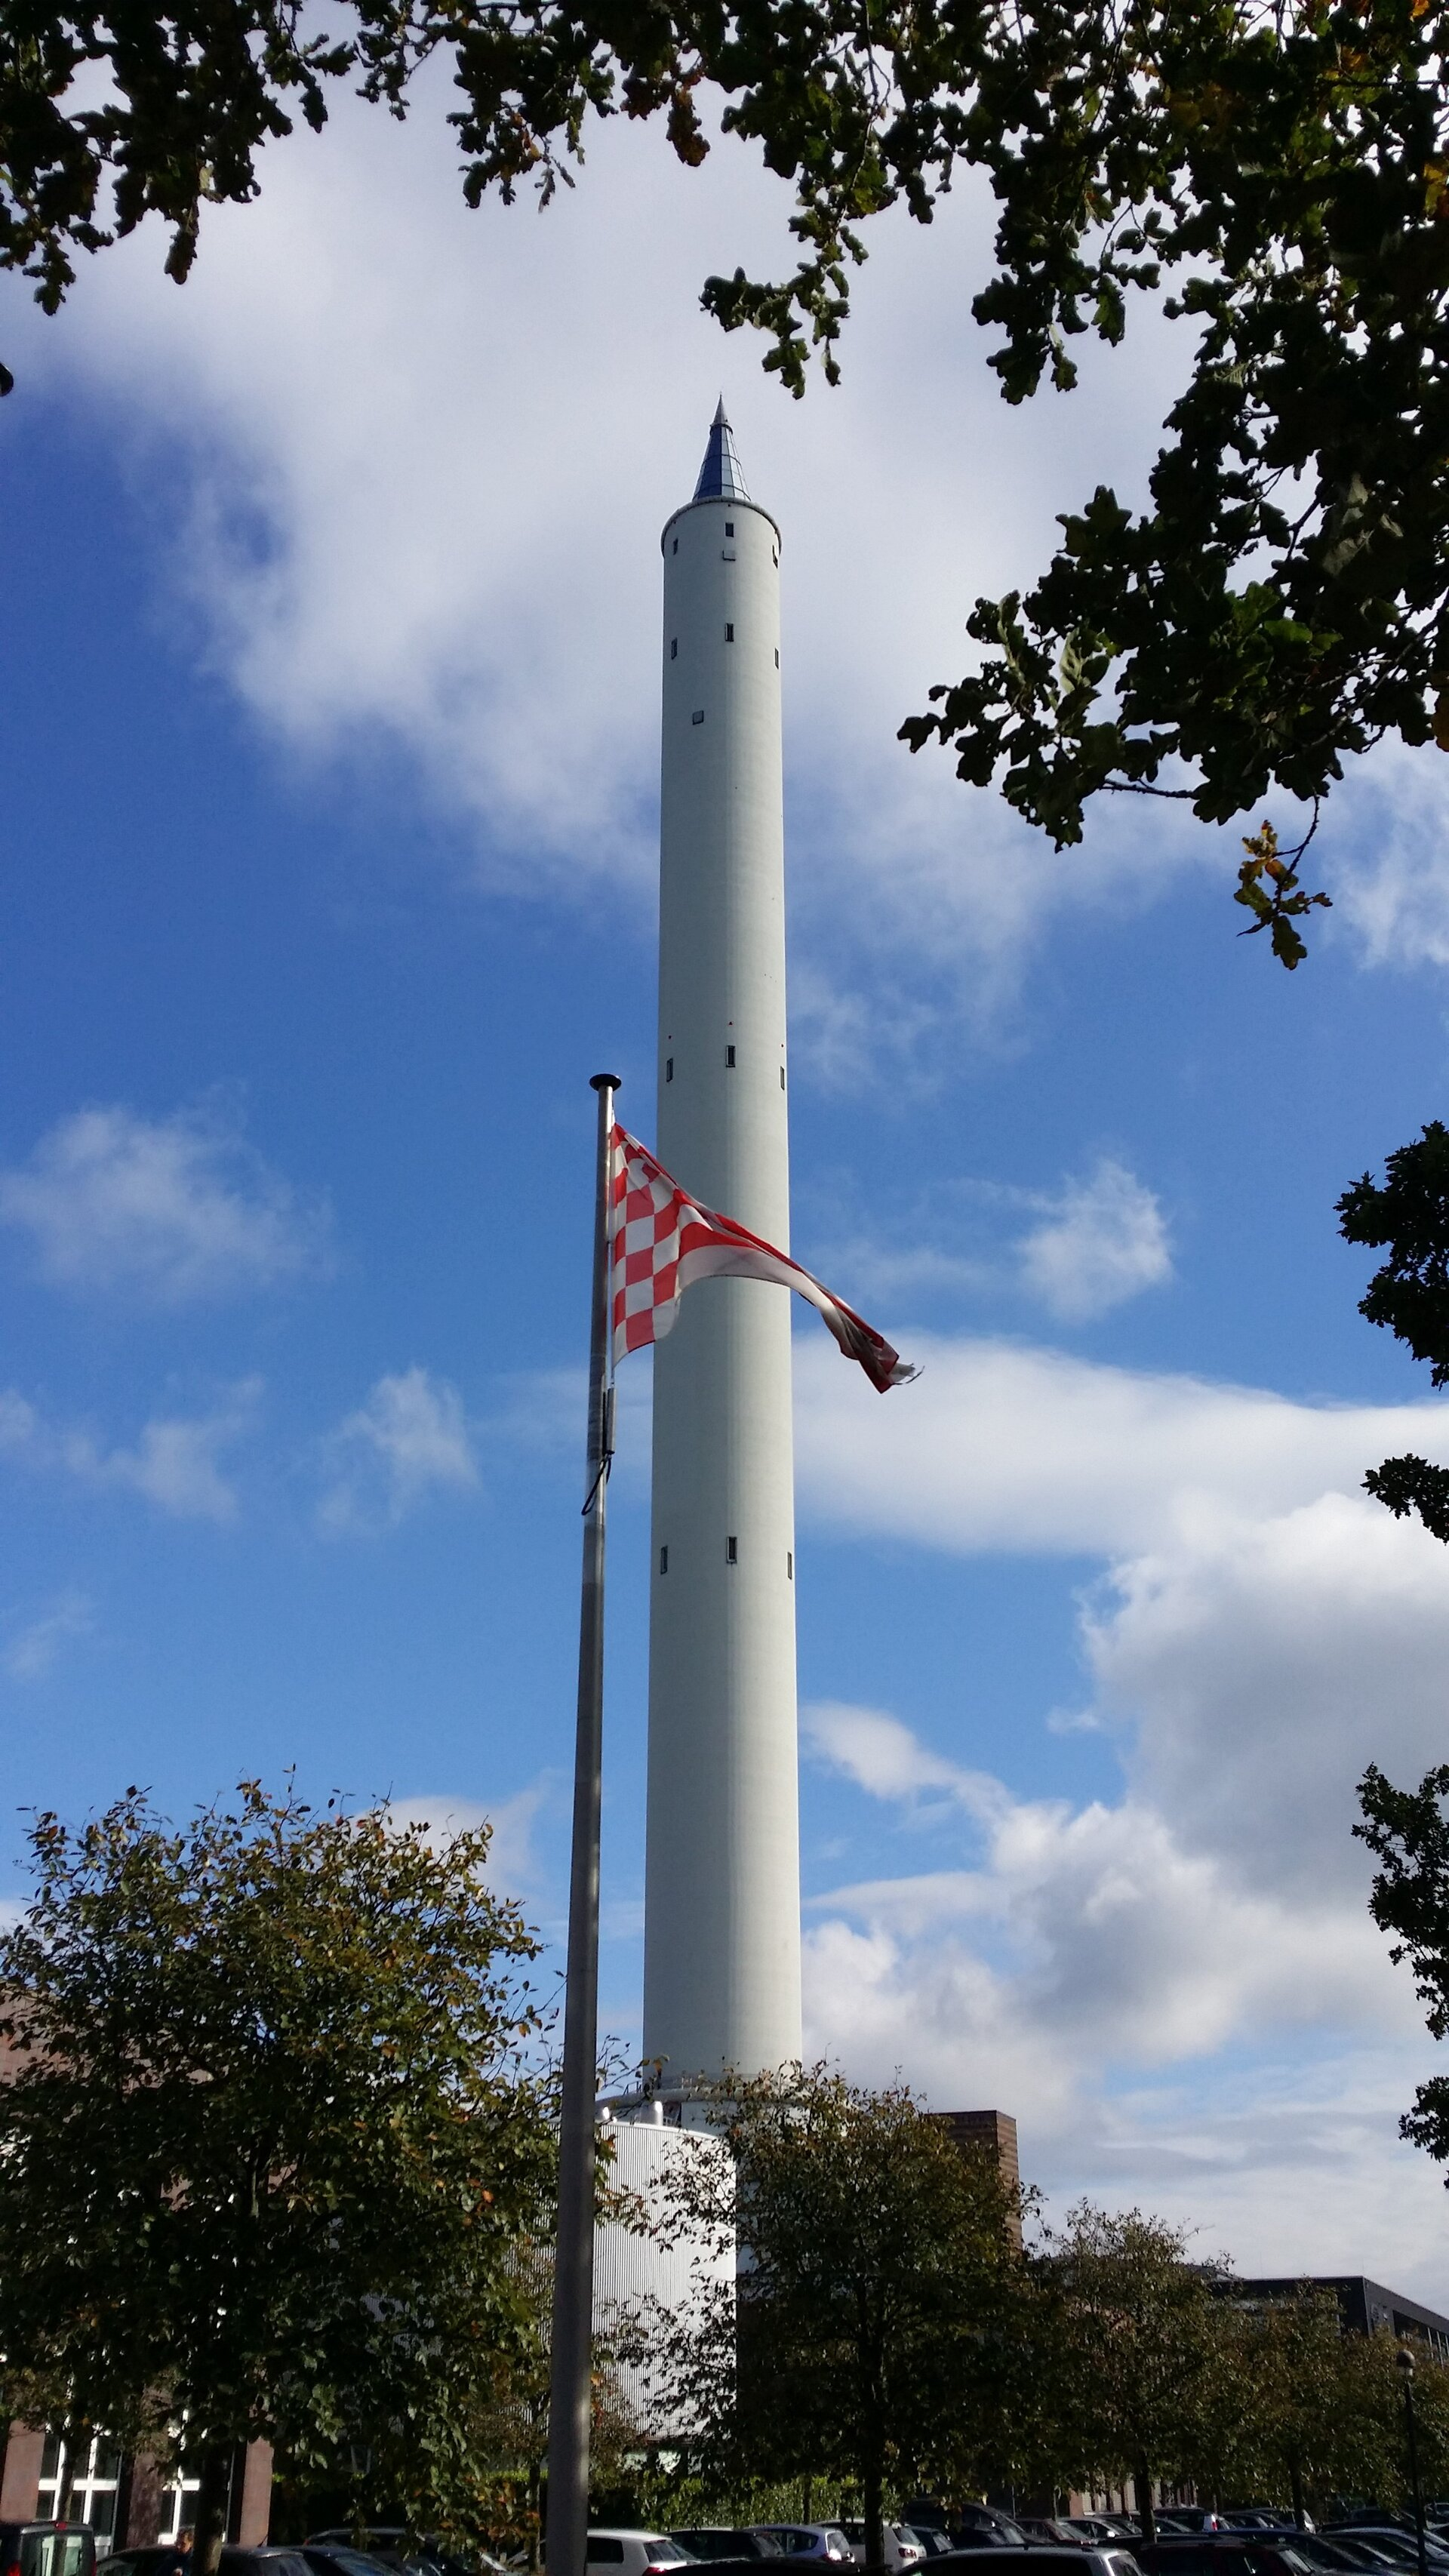 The ZARM Drop Tower behind the flag of Bremen